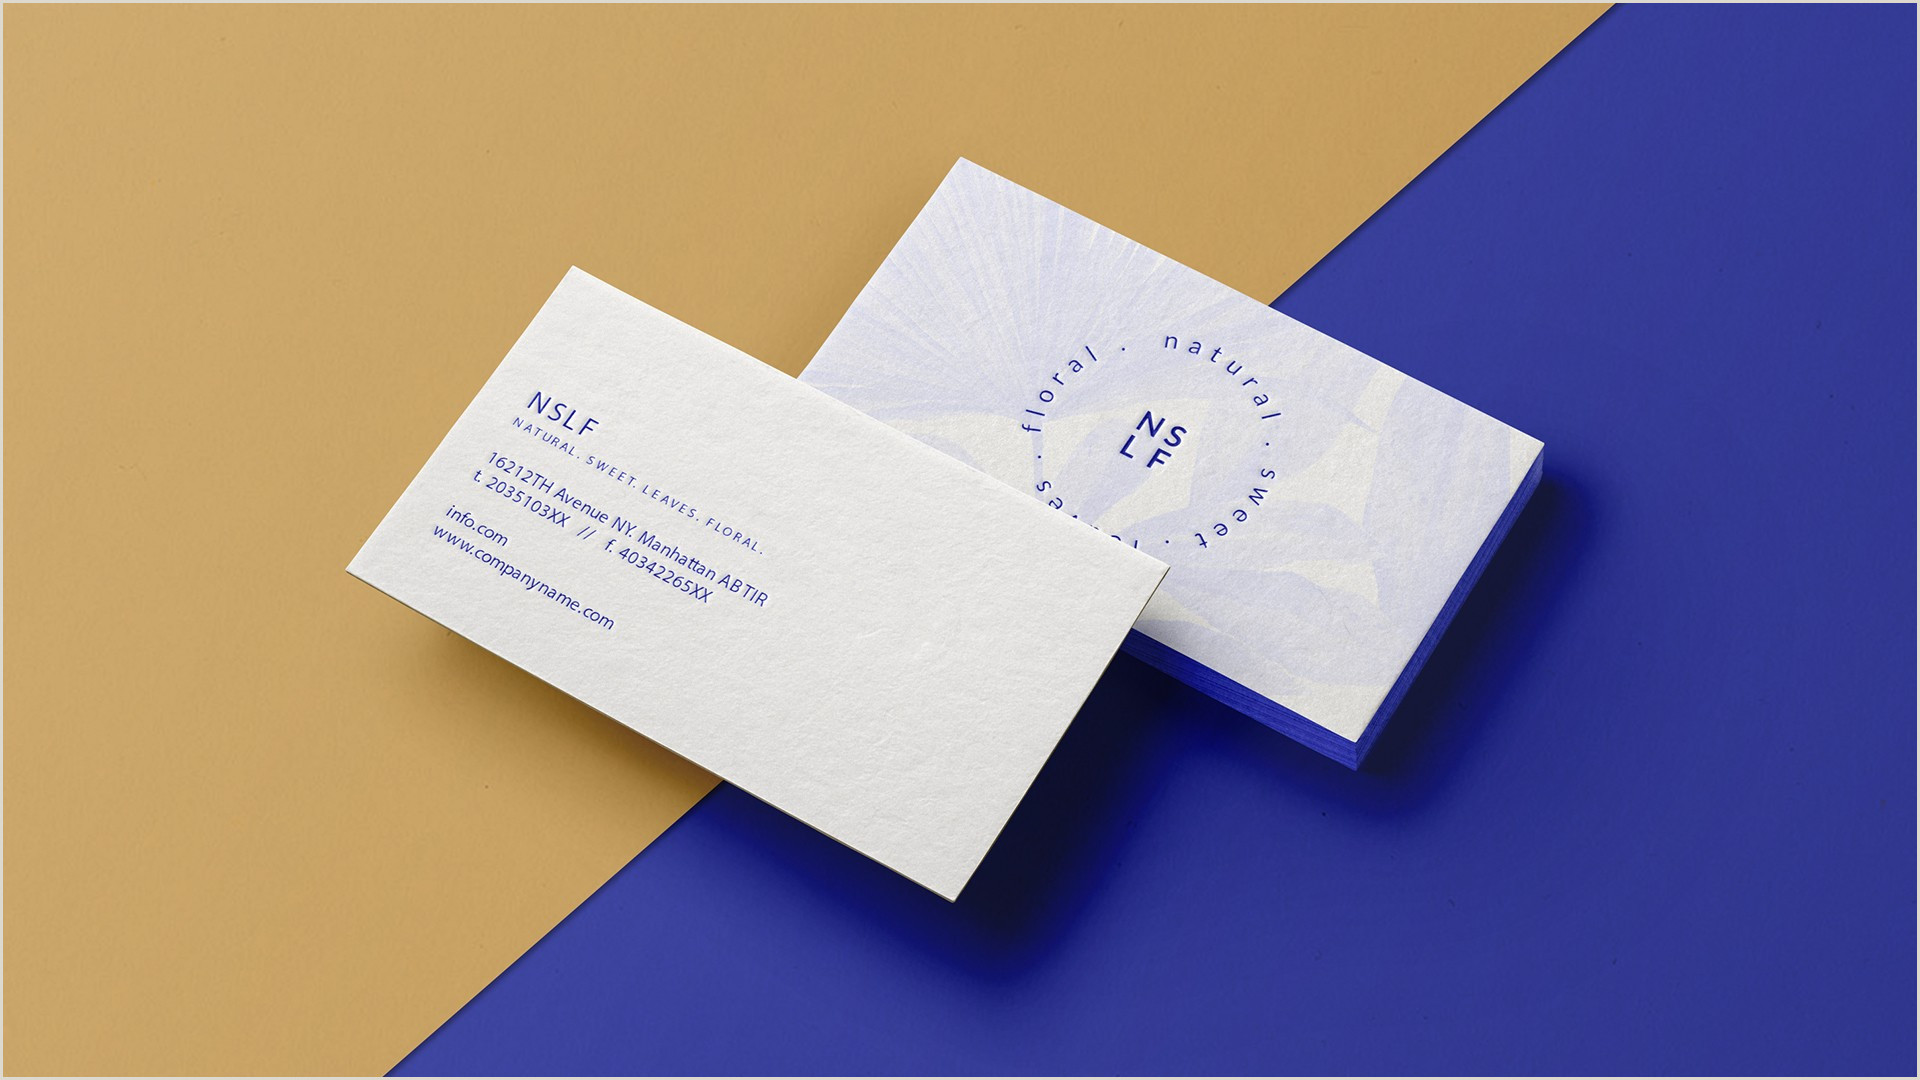 What Information Goes On A Business Card Gdpr What To Do With A Business Card